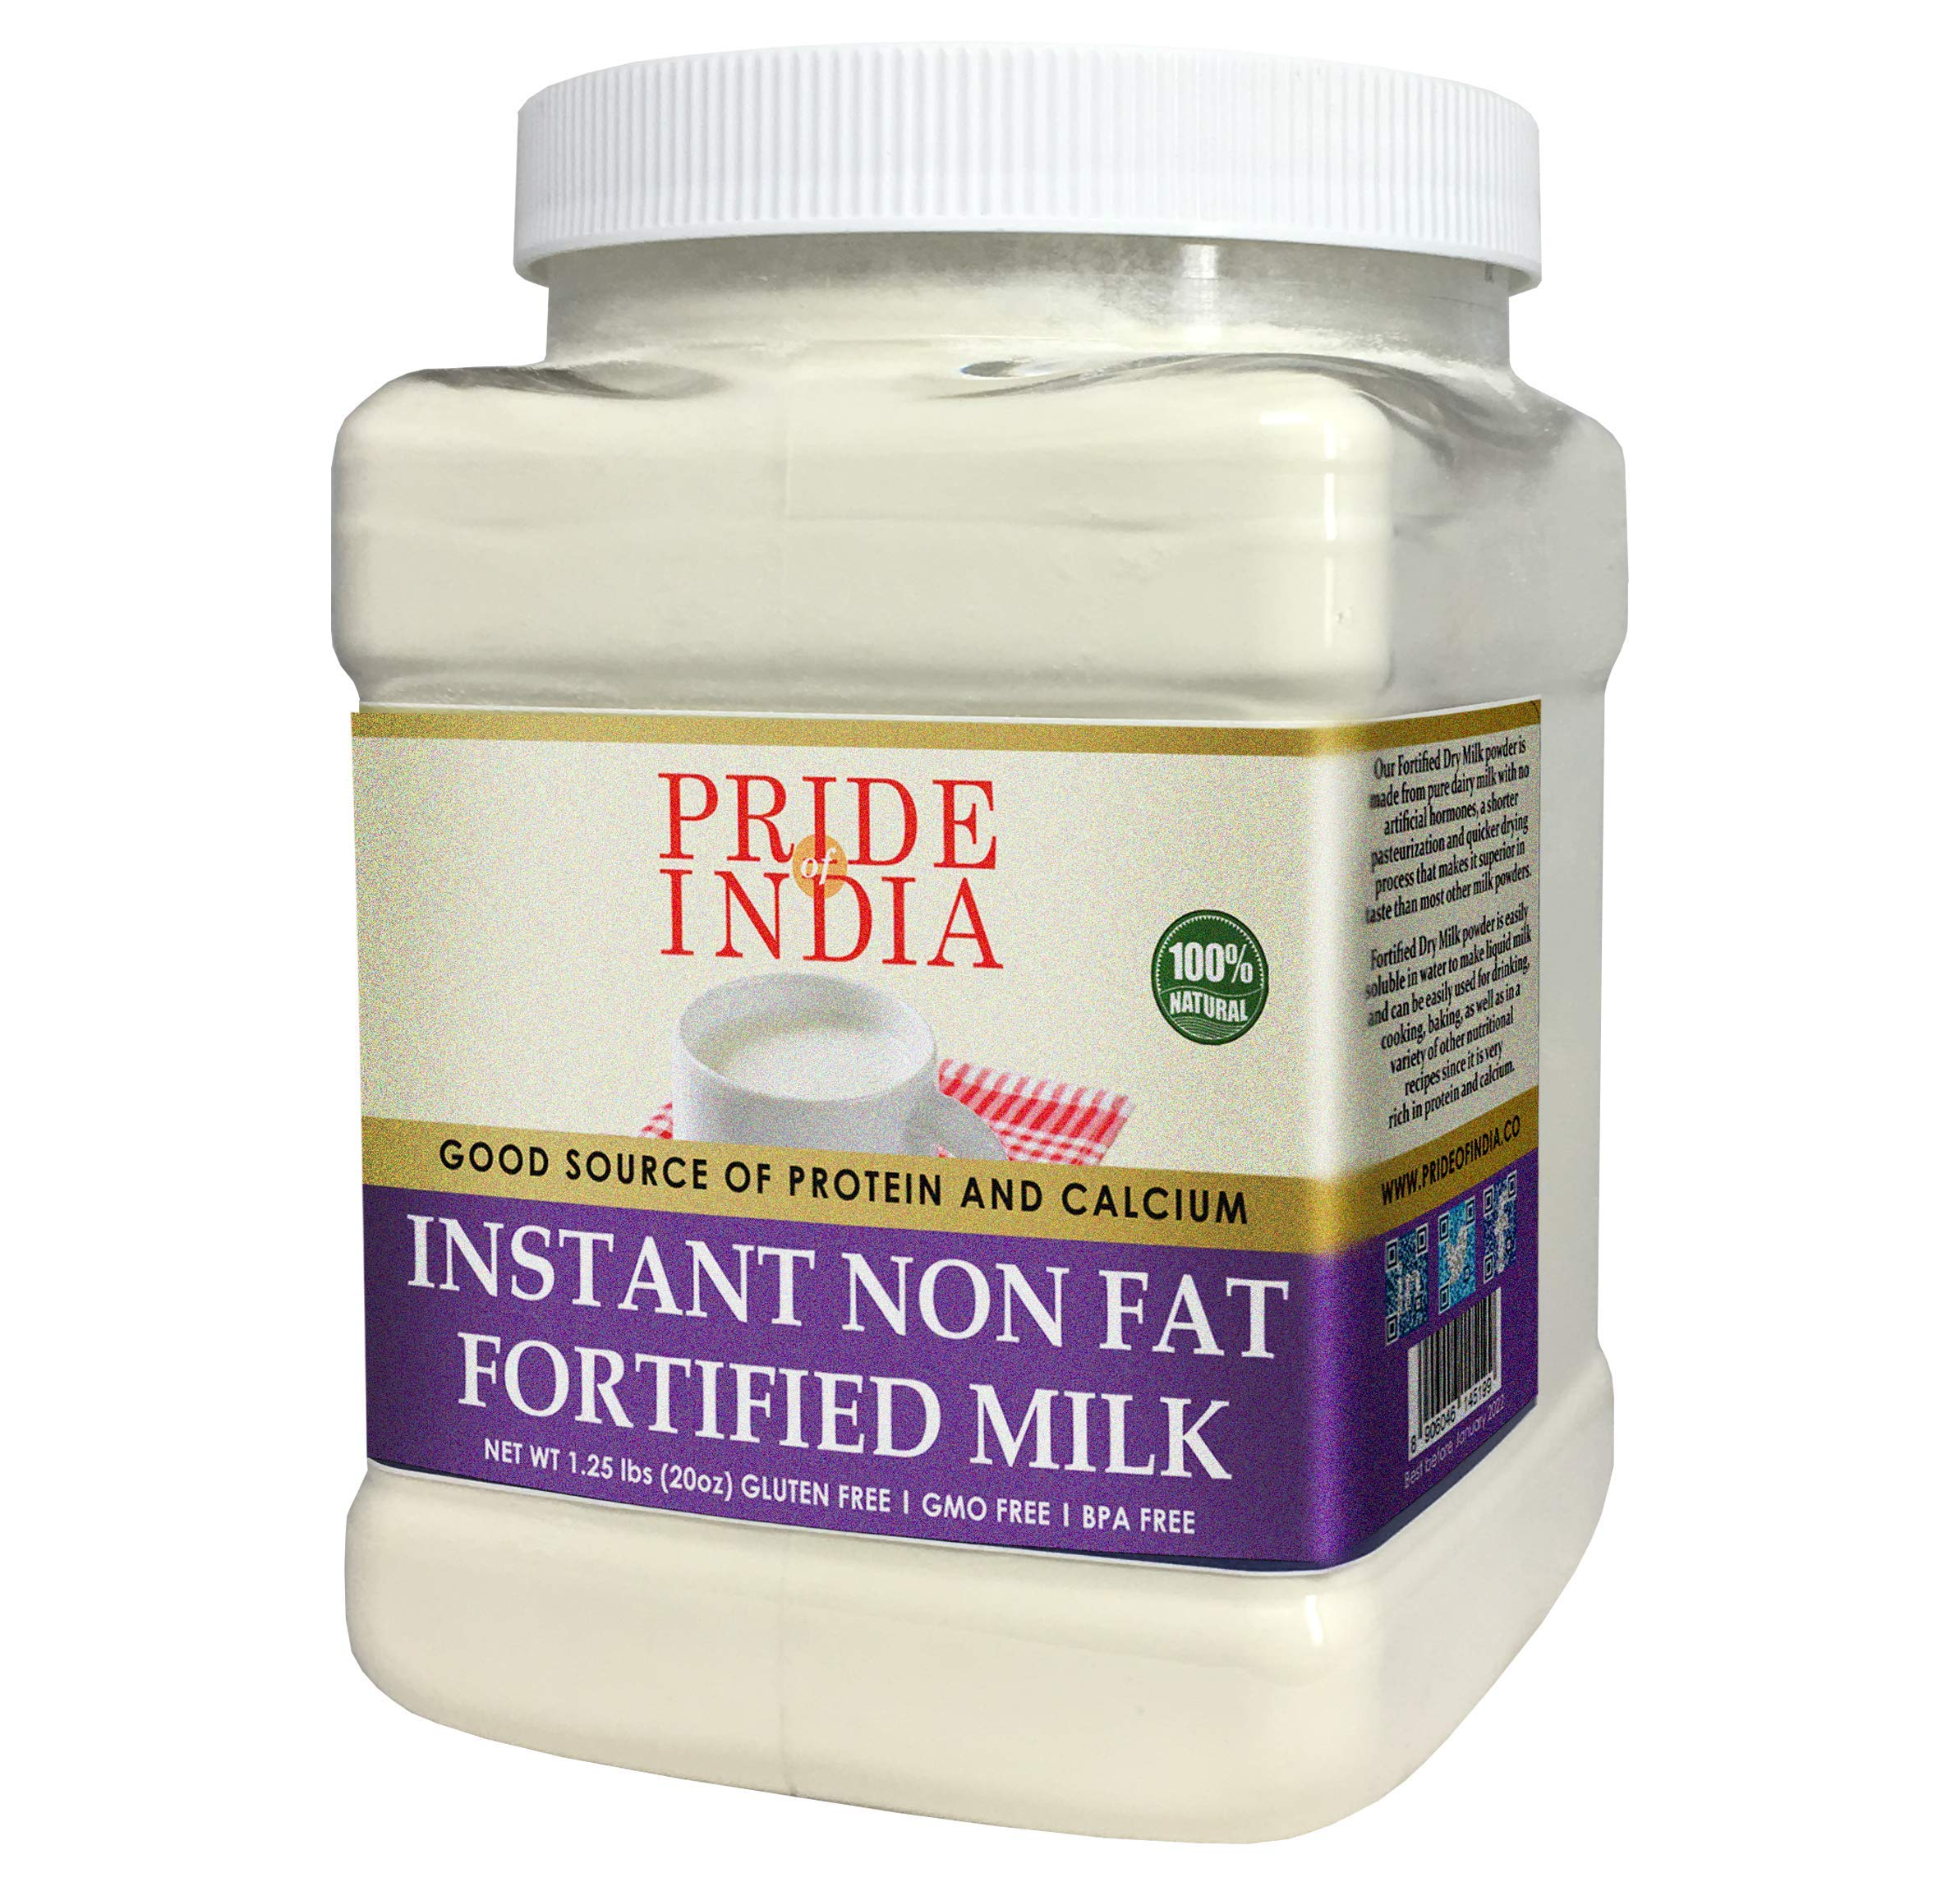 Pride Of India - Instant Fortified Nonfat Dry Milk Powder - Enriched w/ Vitamin D, Protein & Calcium - 1 lbs (16oz) Jar